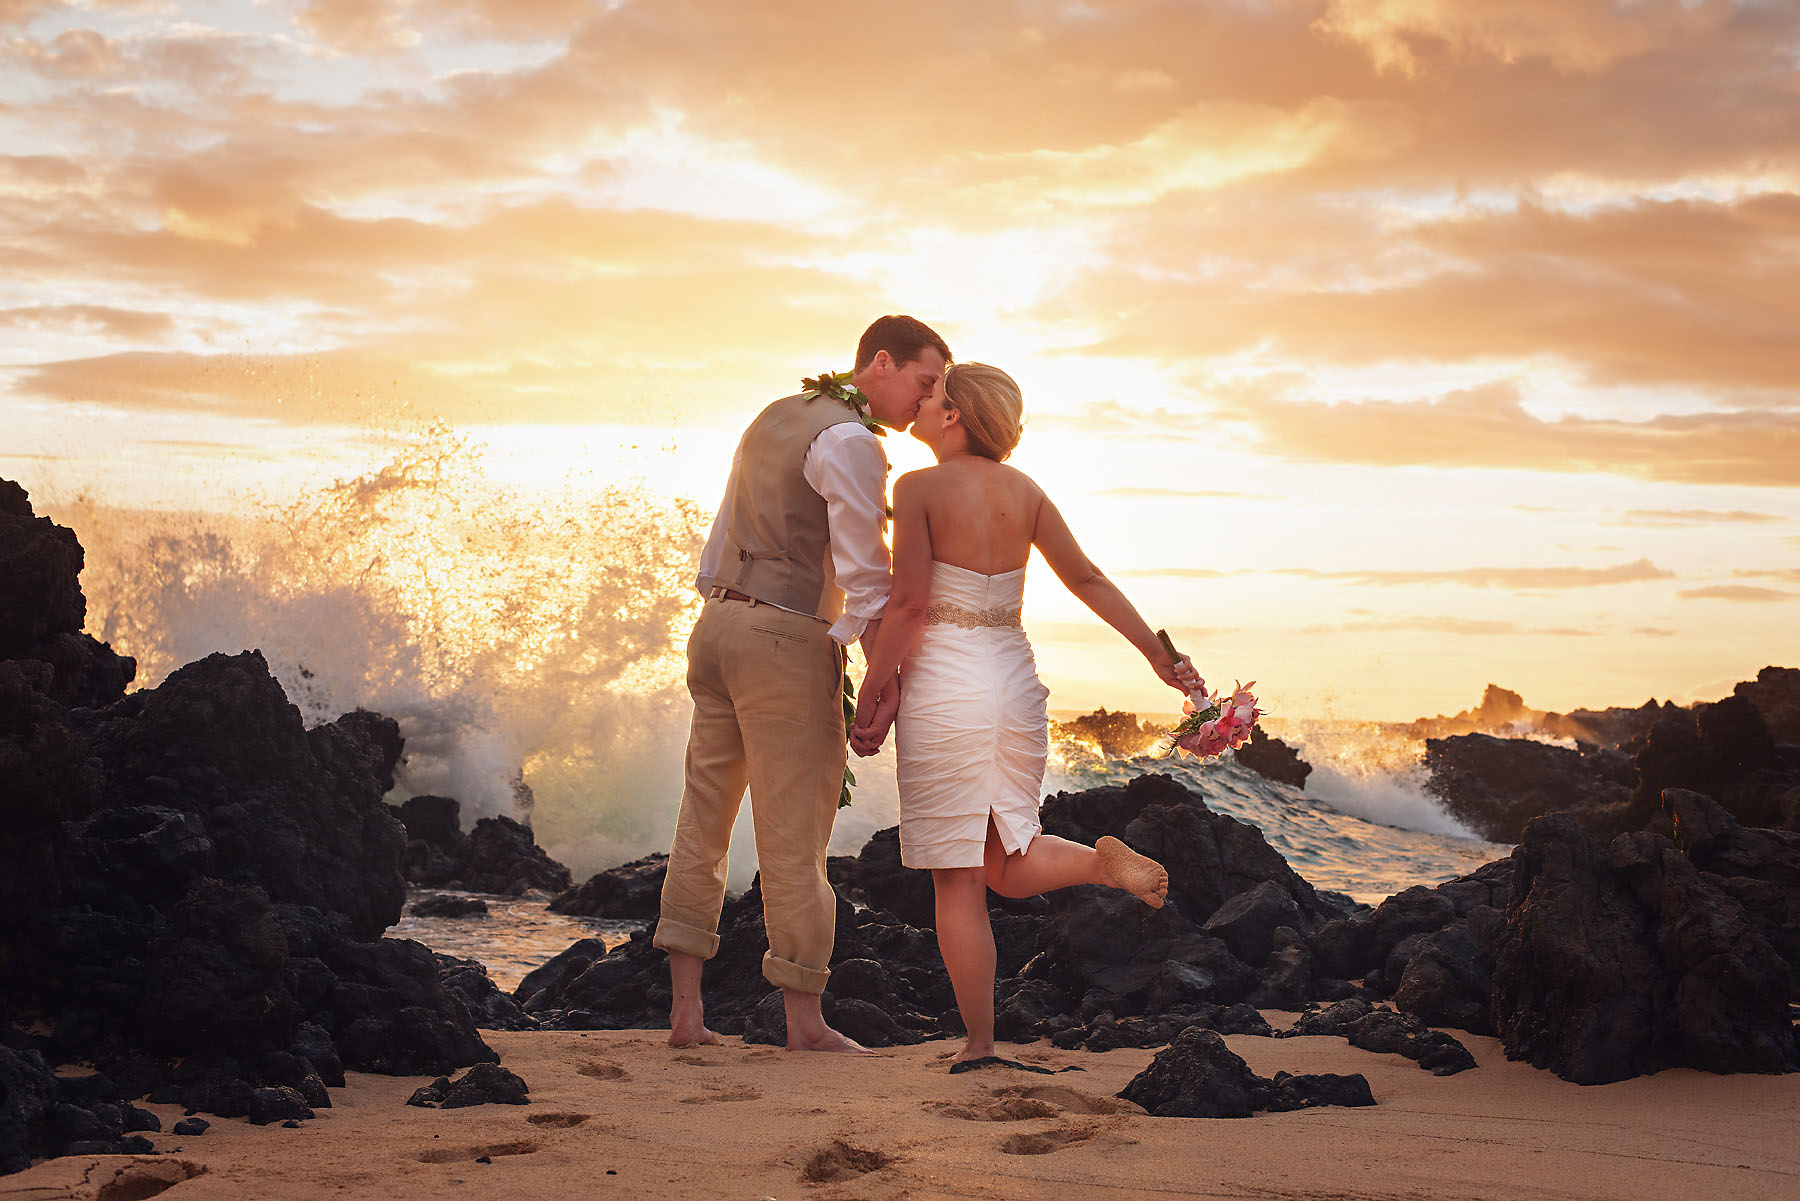 Wedding Photography - this wedding pose highlighted the waves crashing behind during this beach themed wedding